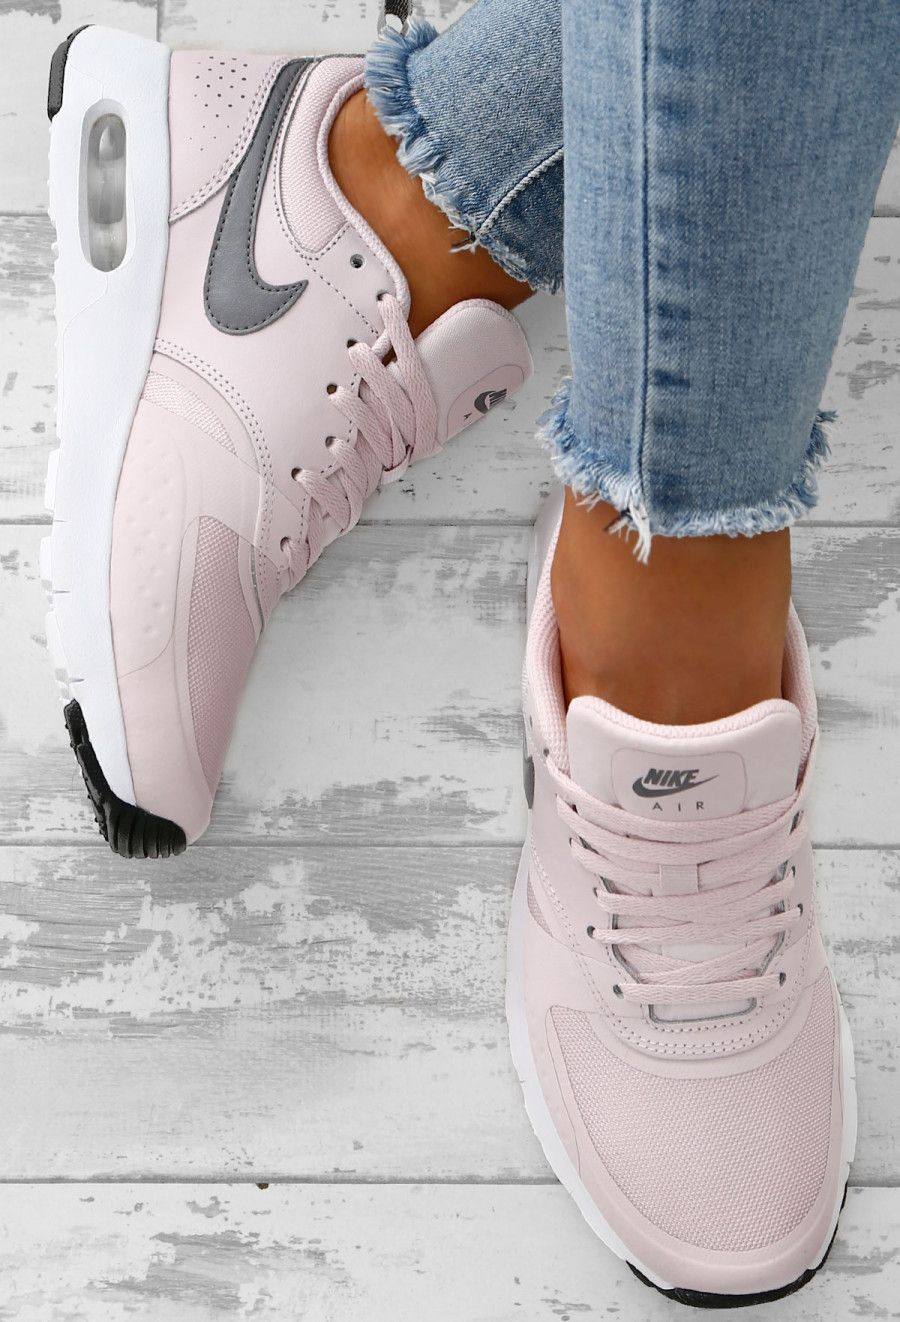 9c19a5c5da92 Nike Air Max Pink and Grey Vision Trainers - UK 3